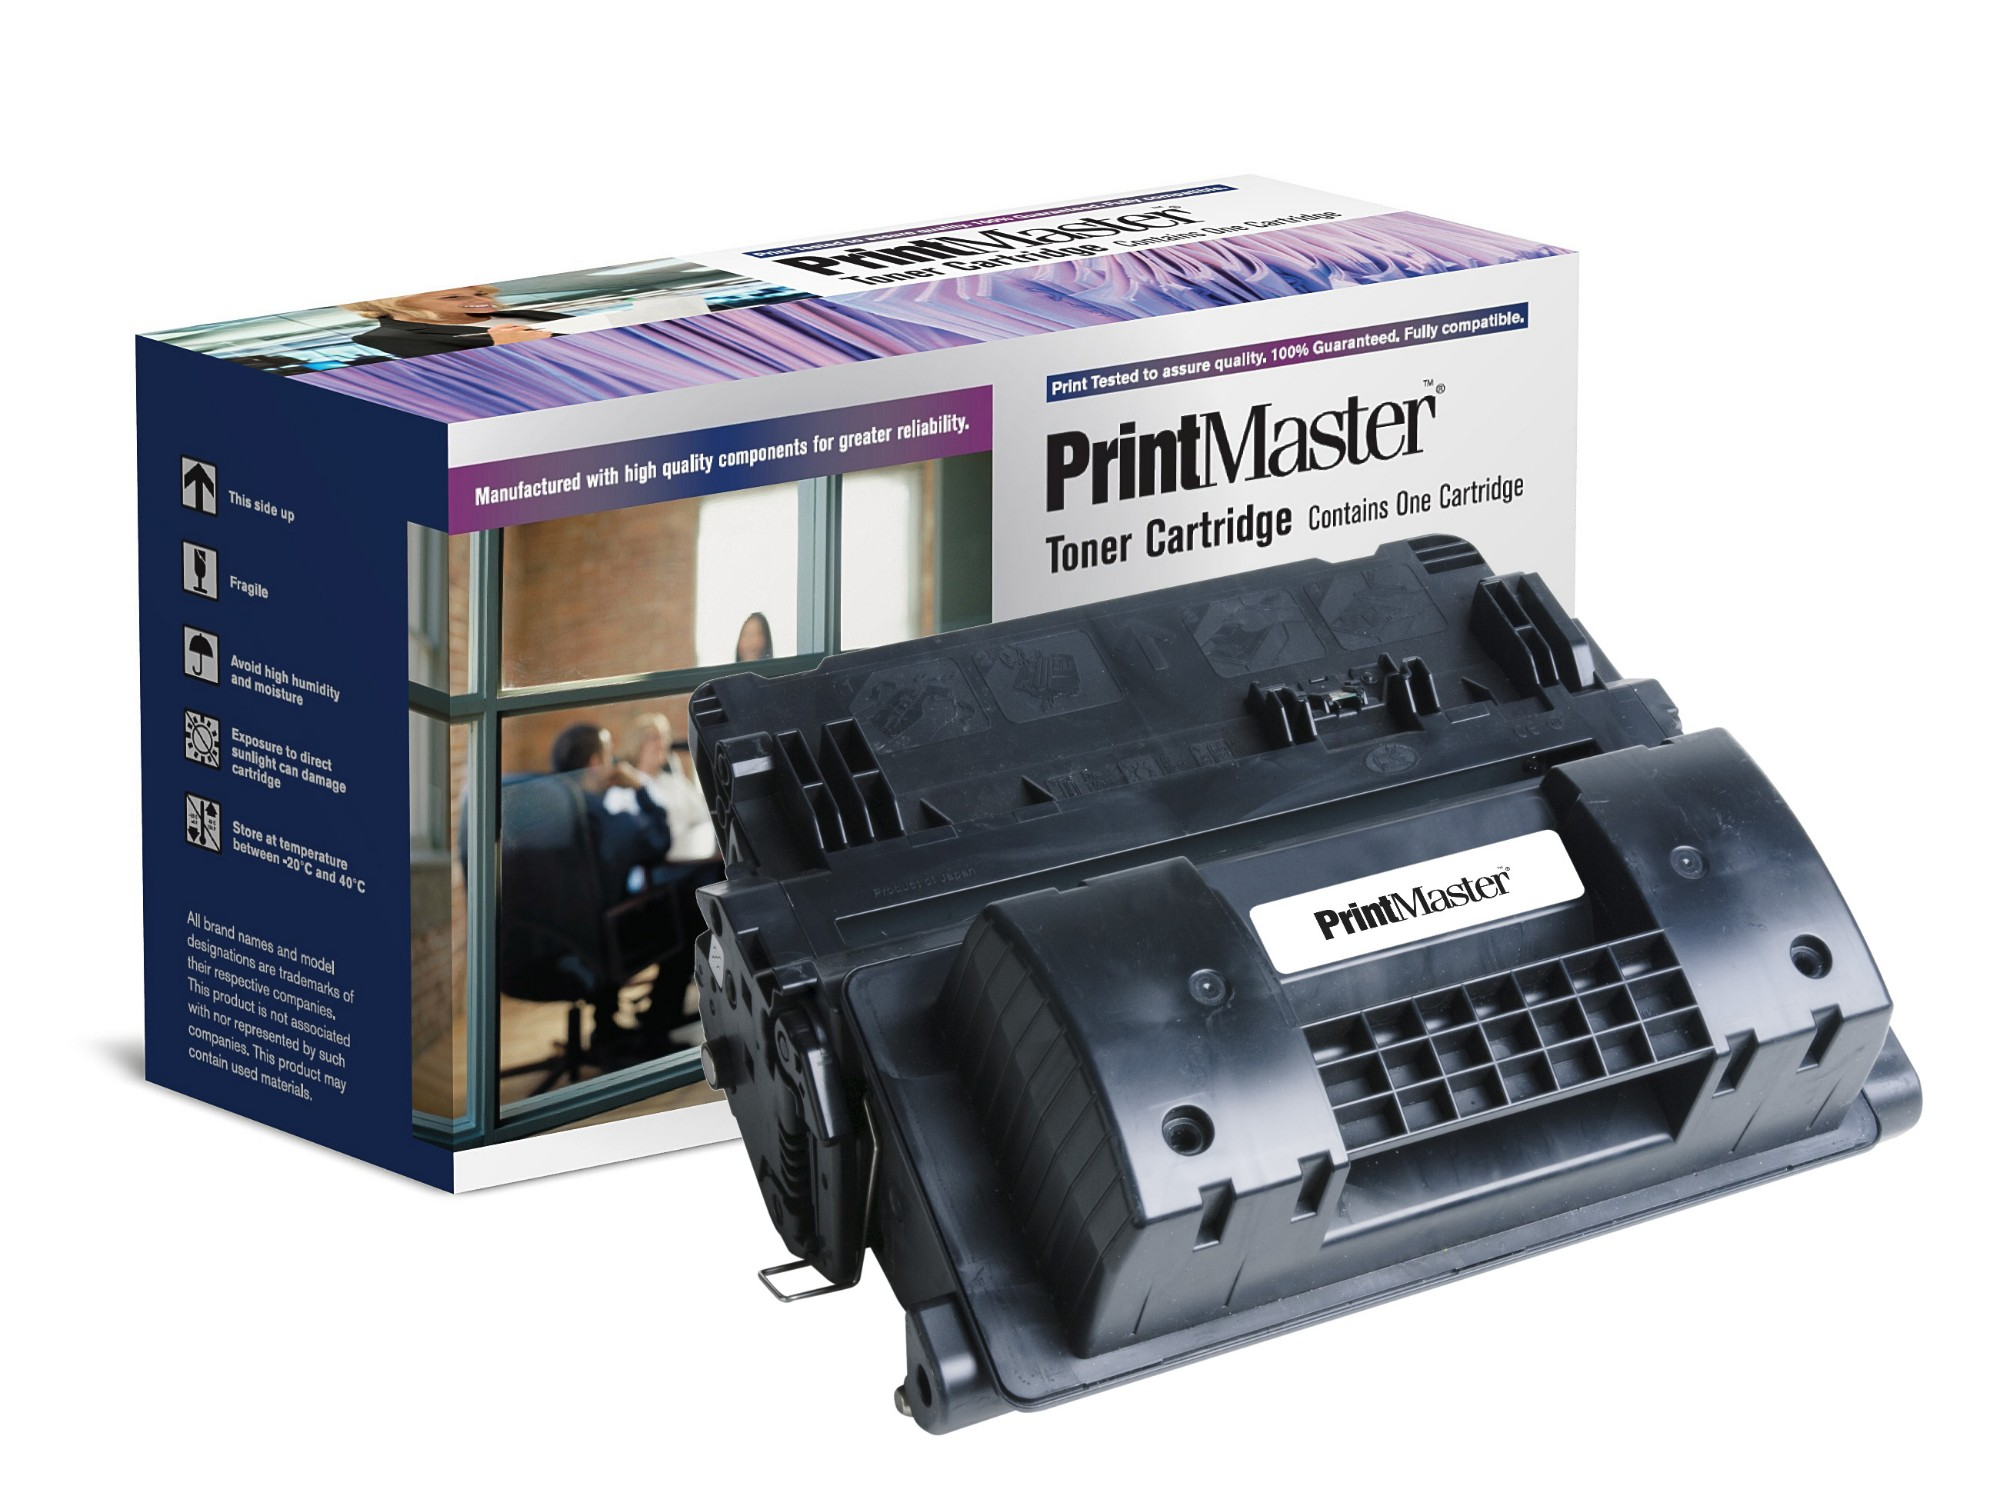 PrintMaster Black Toner Cartridge for HP LaserJet P4015, 4515